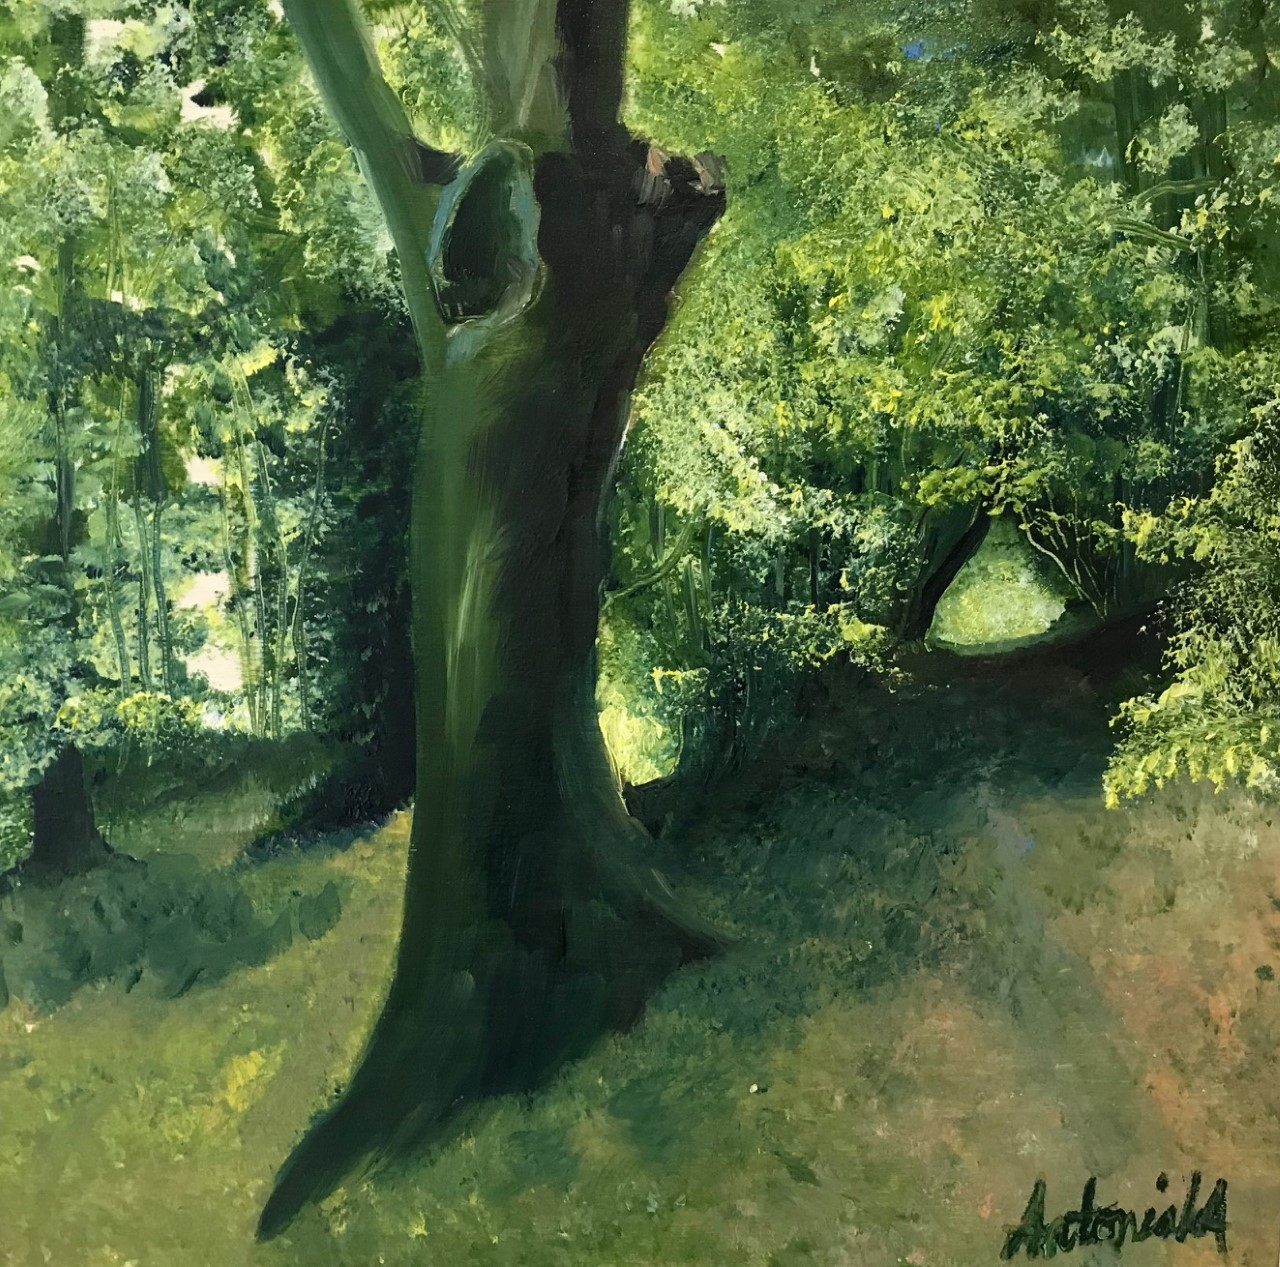 The Woods at Priory Park, Oil Painting, £90, SOLD